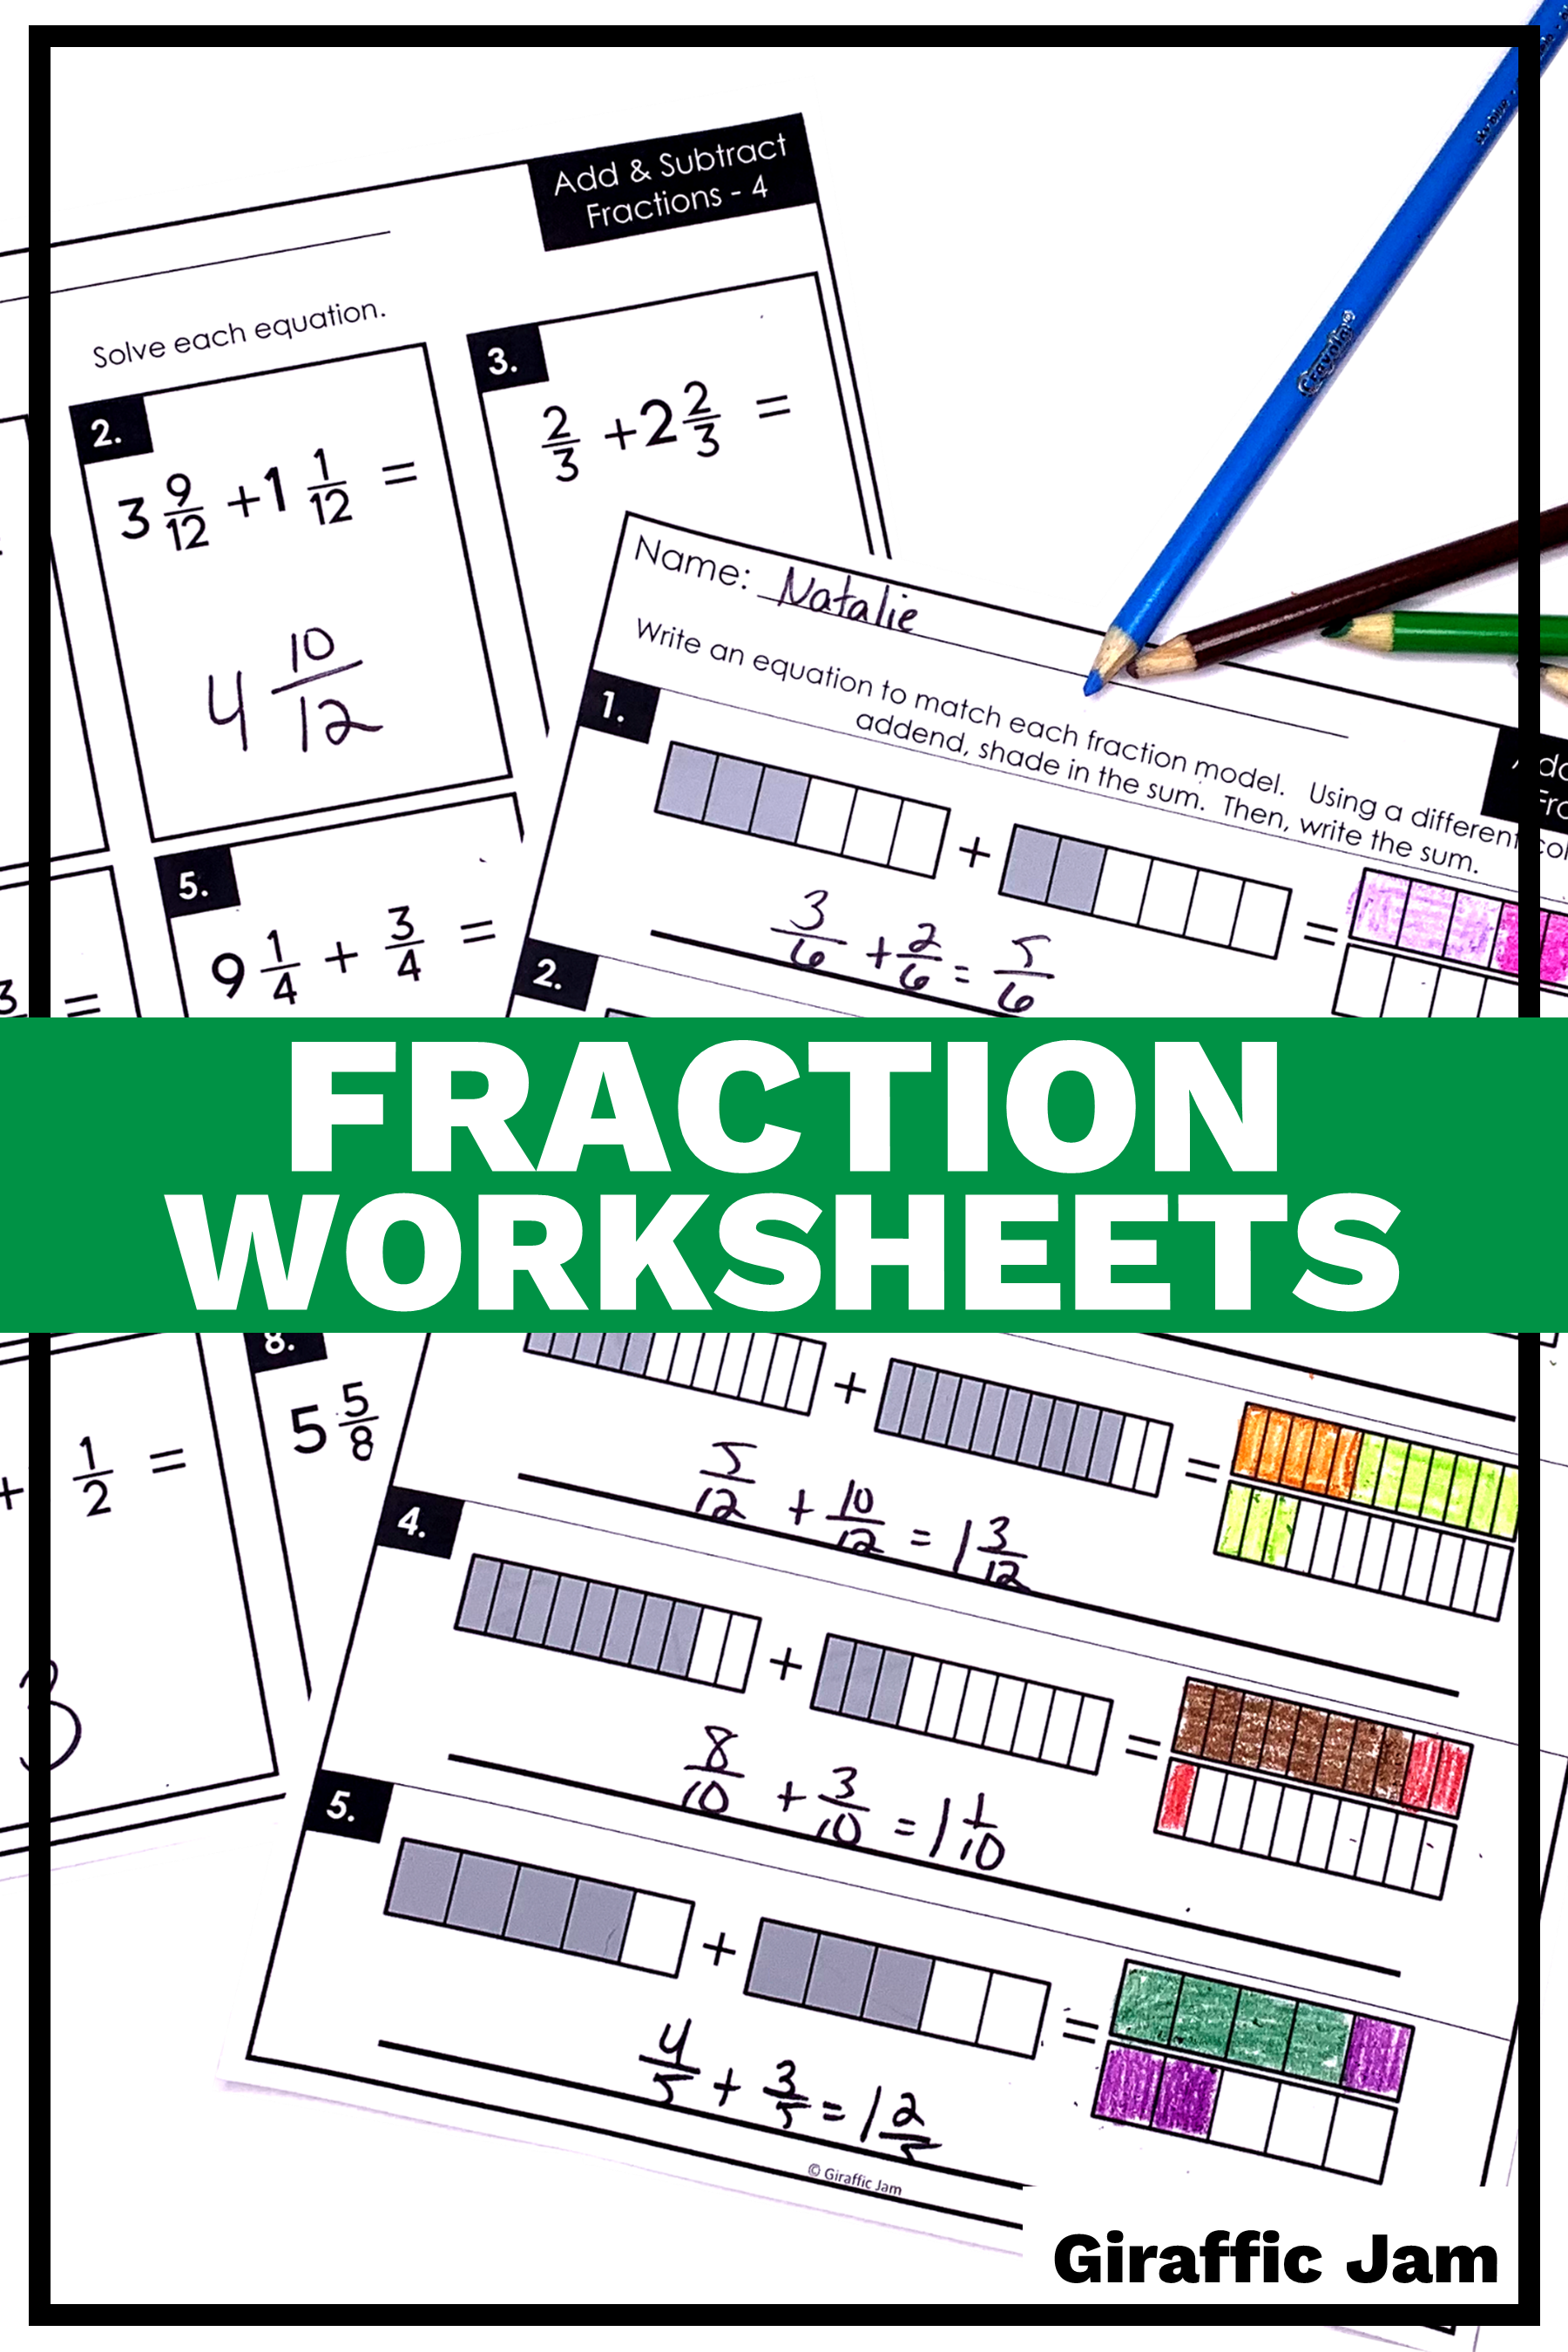 4th Grade fractions   Adding Fractions   Subtracting Fractions   Fraction  worksheets  …   Adding and subtracting fractions [ 2700 x 1800 Pixel ]